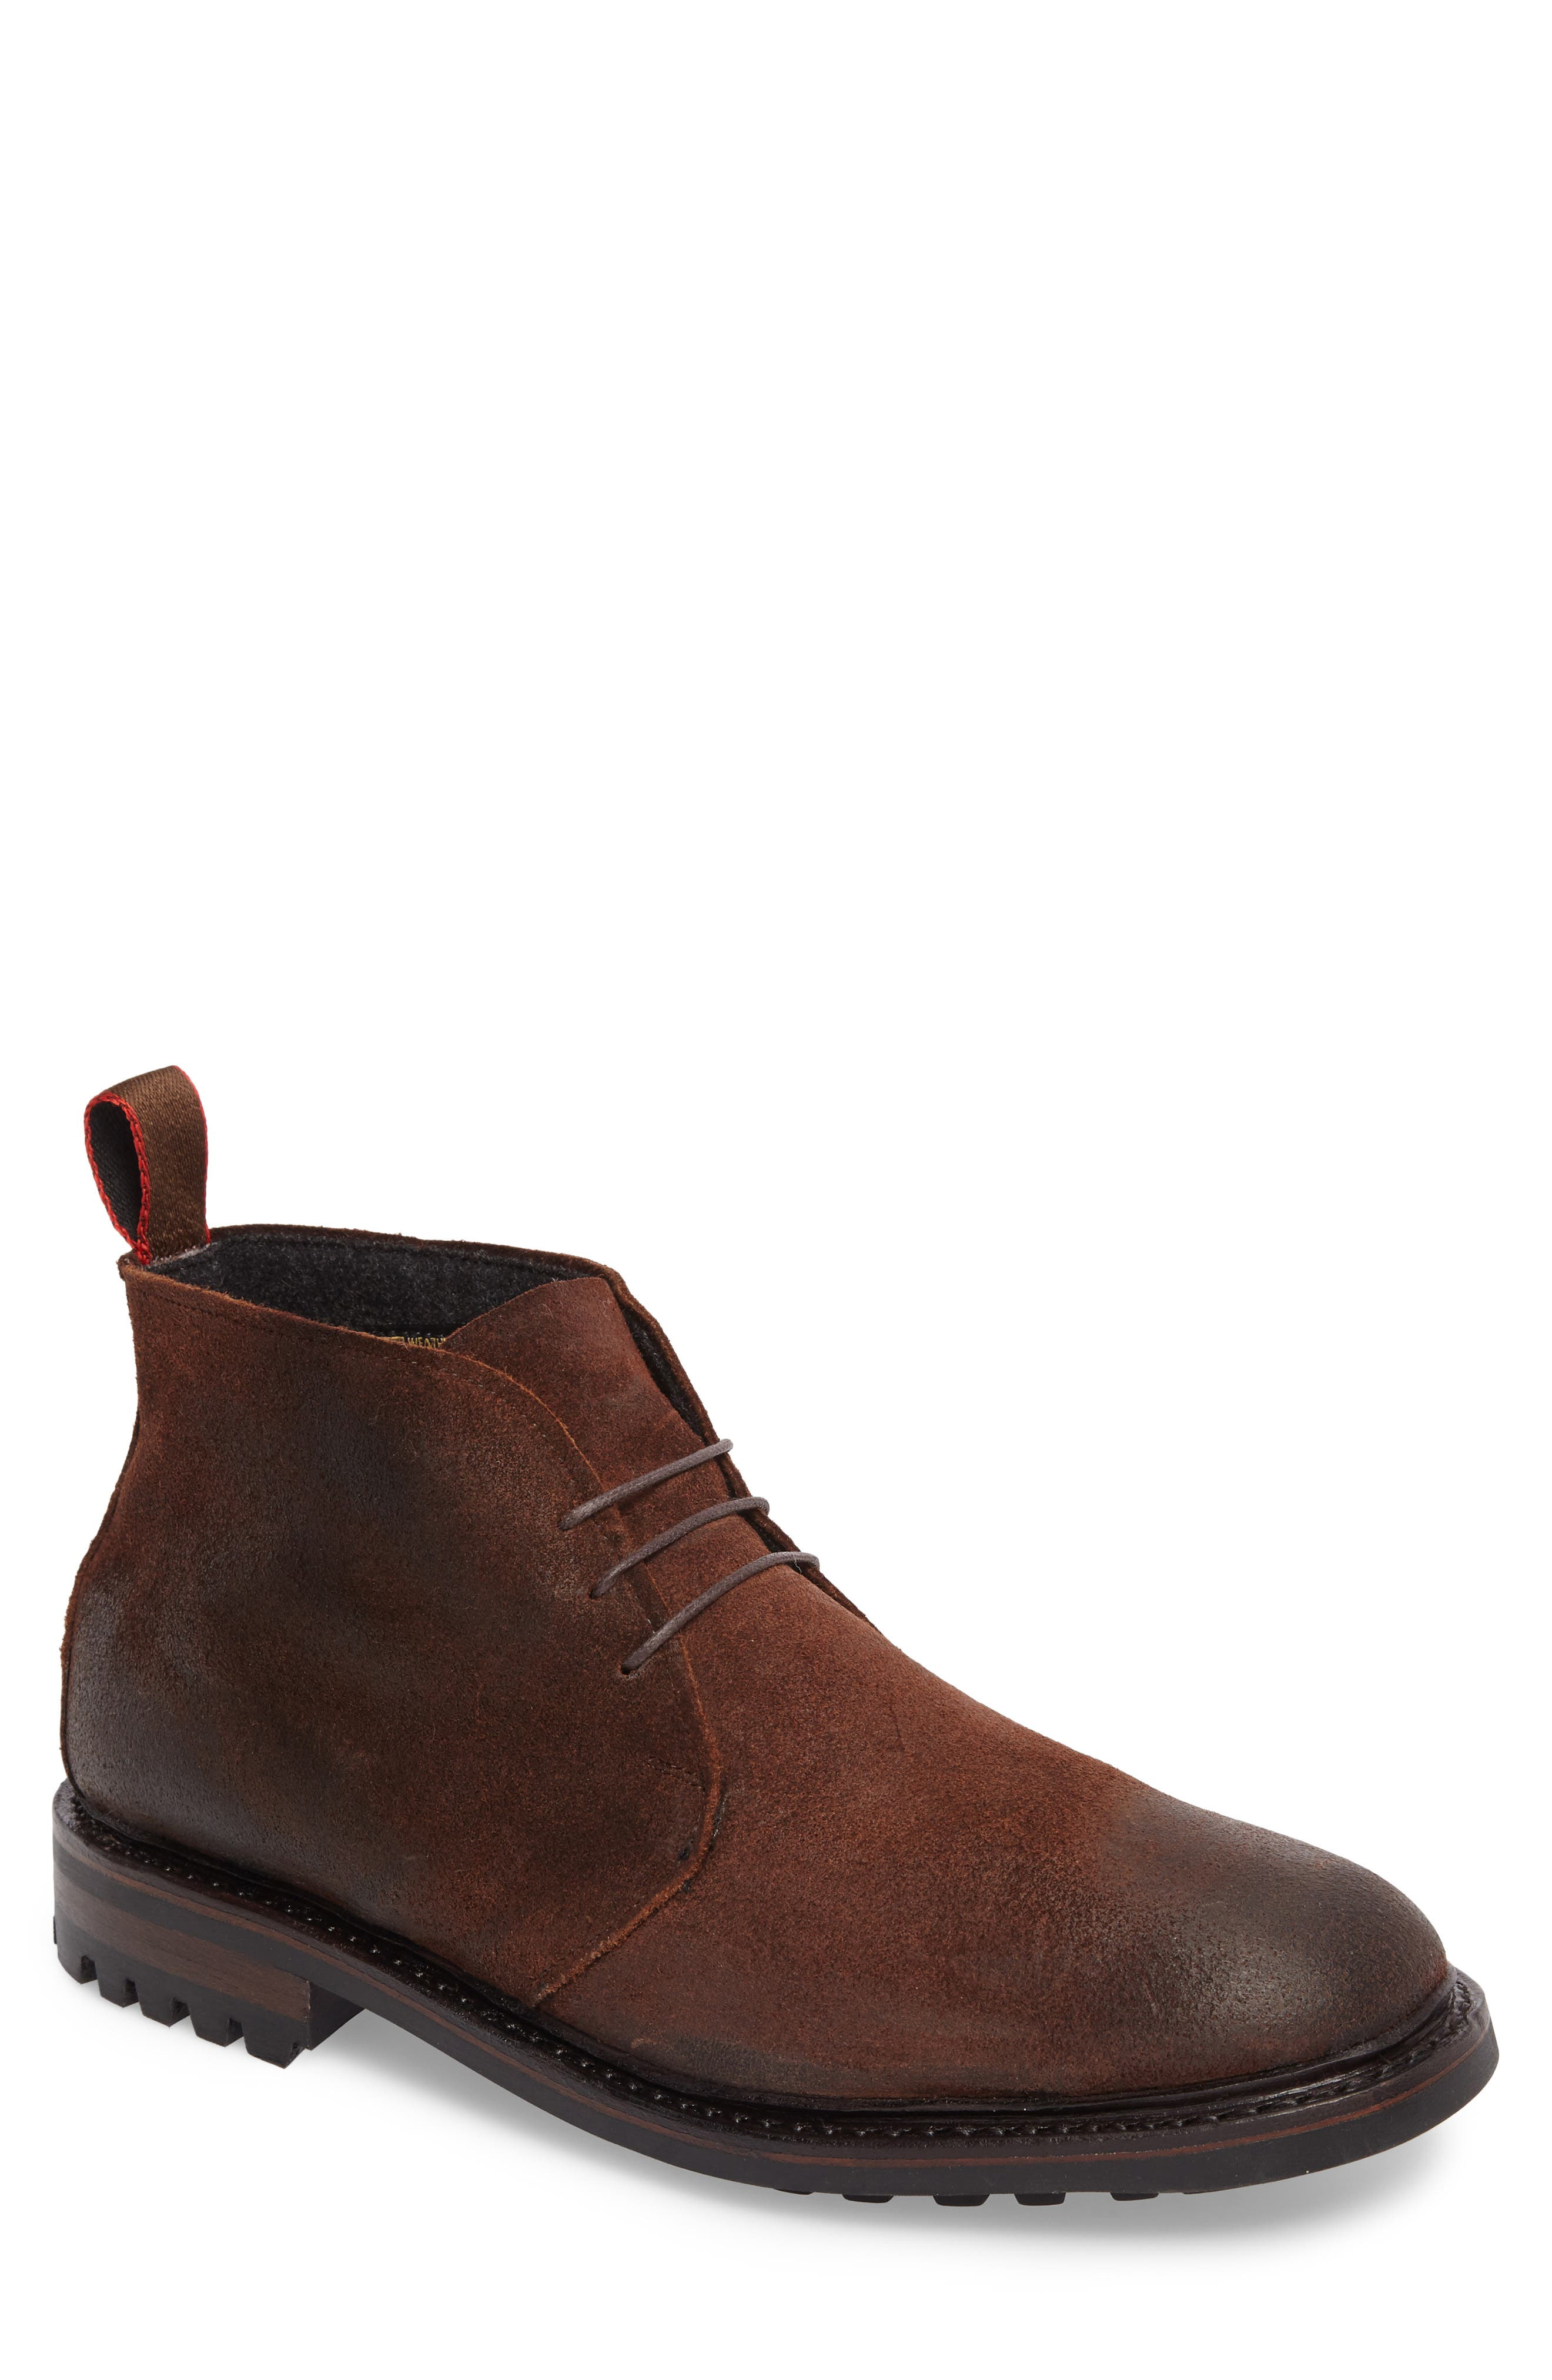 Surrey Water Repellent Chukka Boot,                         Main,                         color, Brown Leather